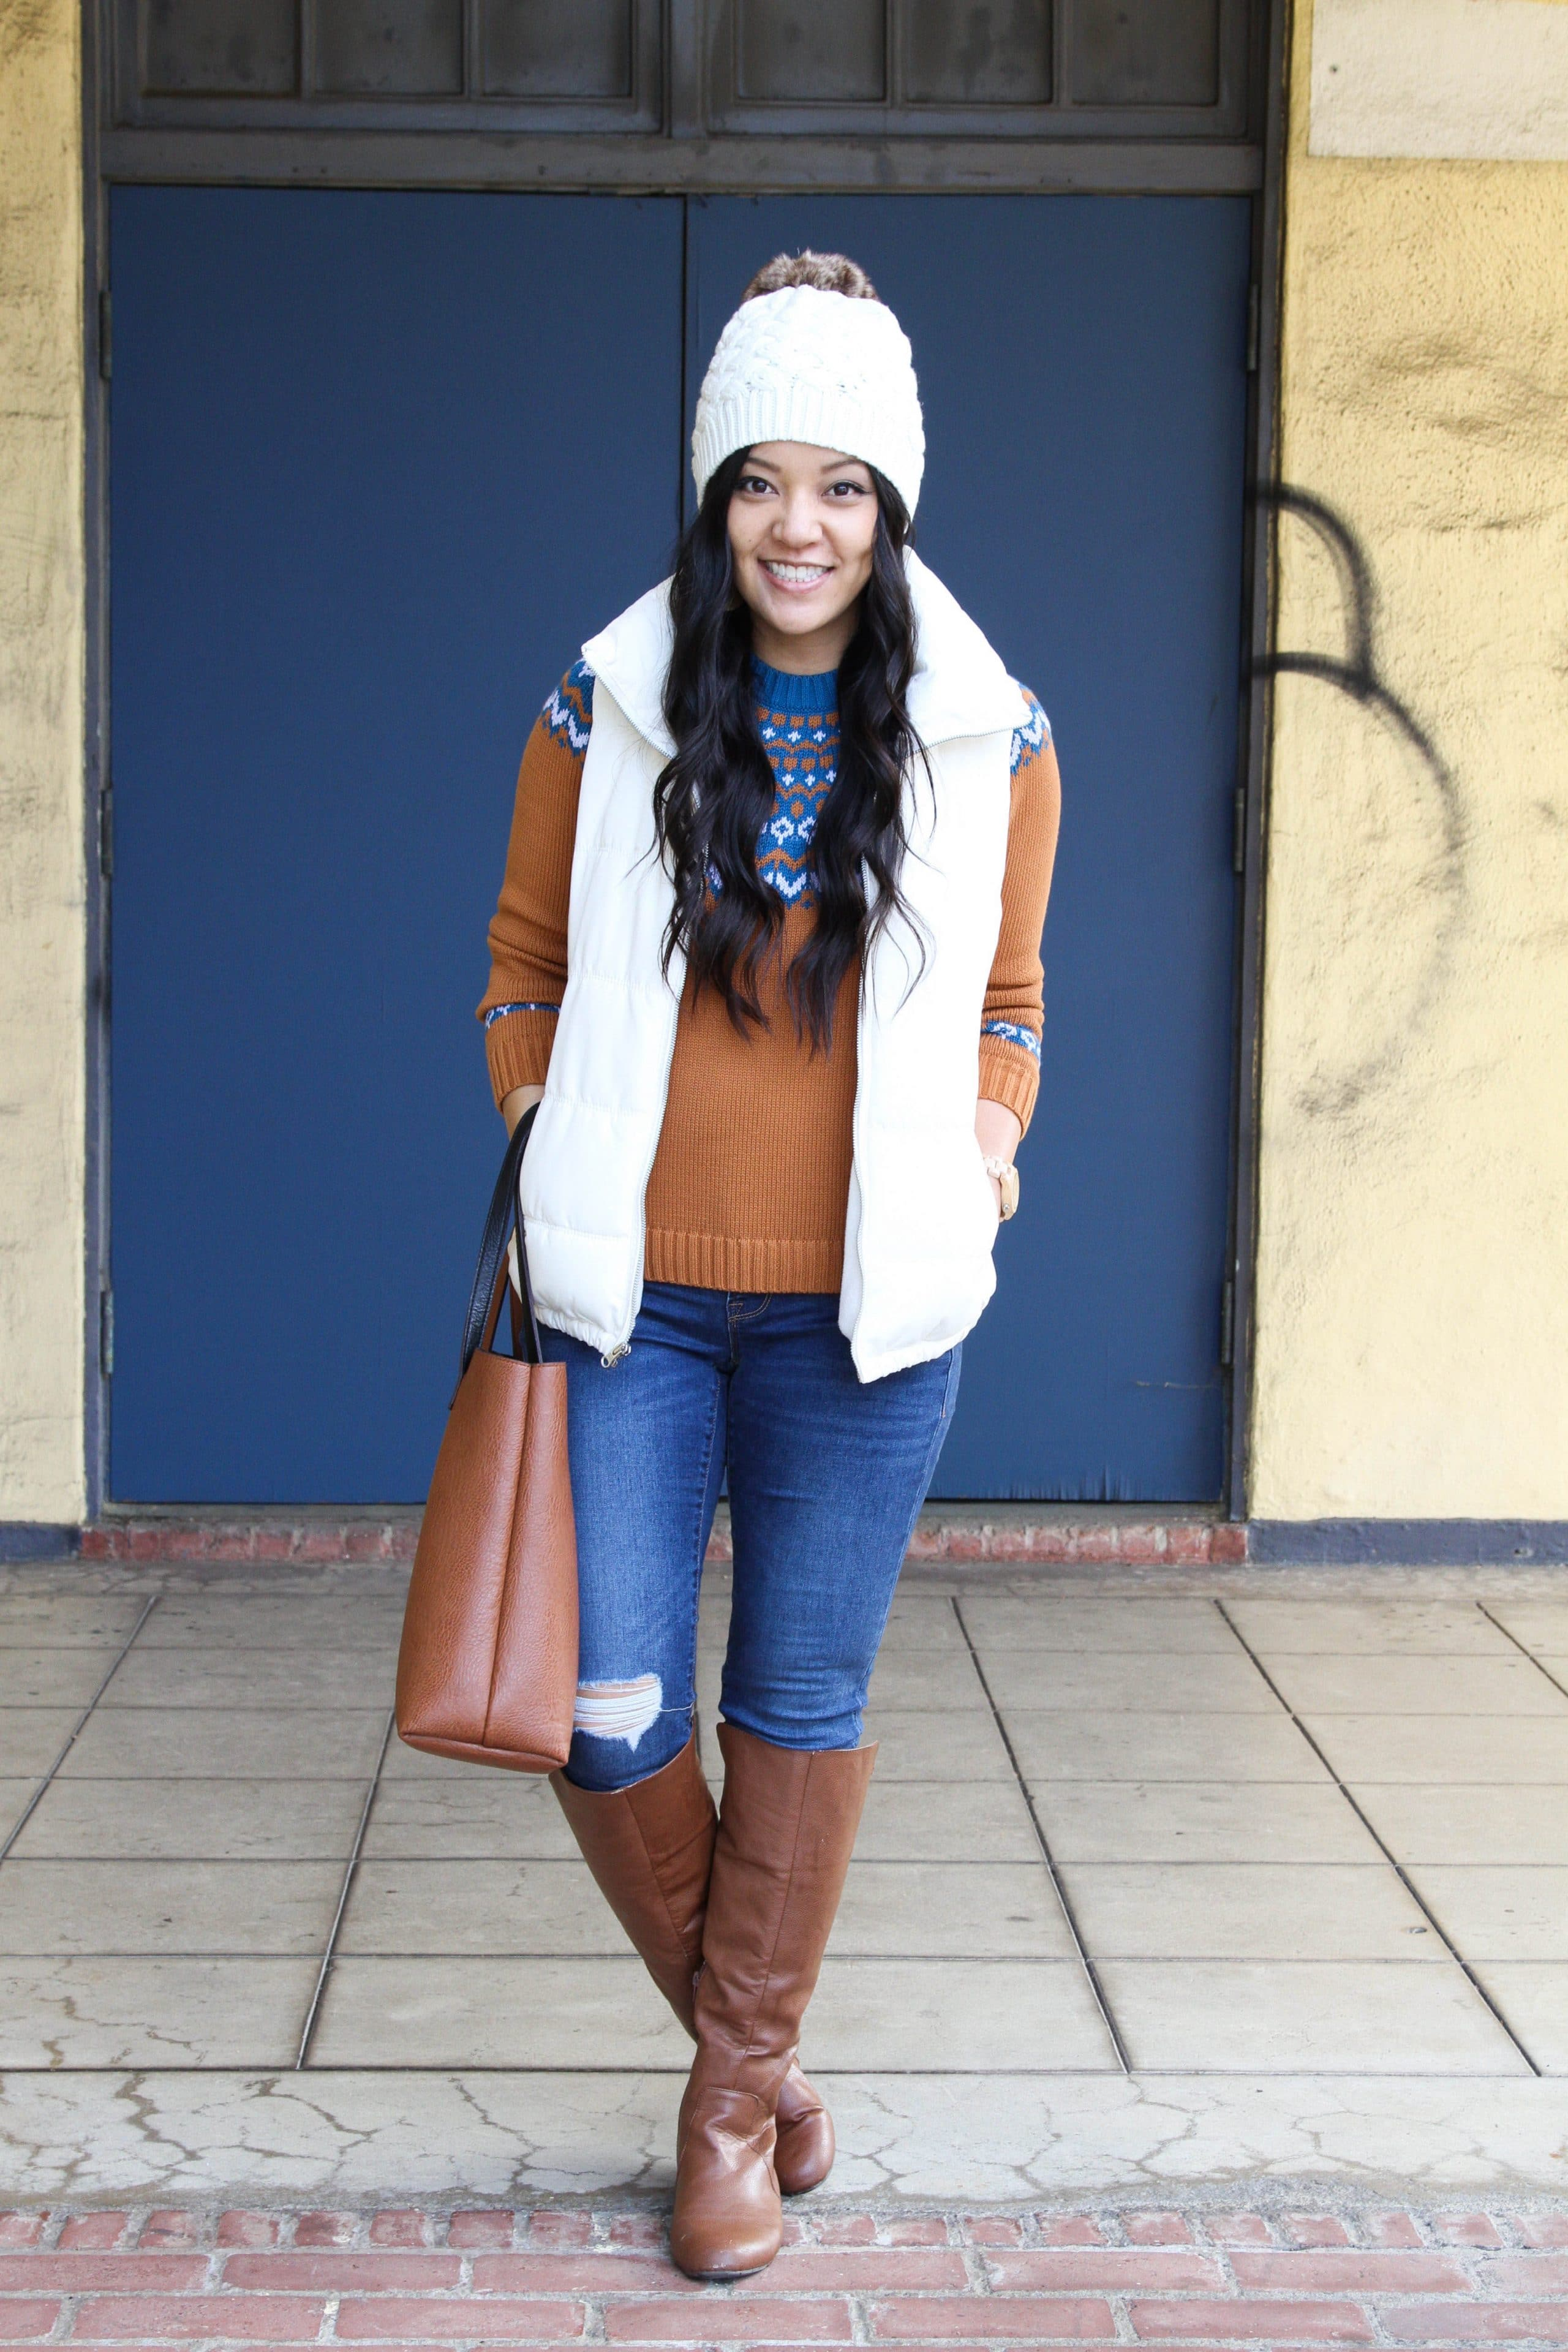 Fair Isle Sweater + White Vest + Beanie + Skinnies + Boots + Tote